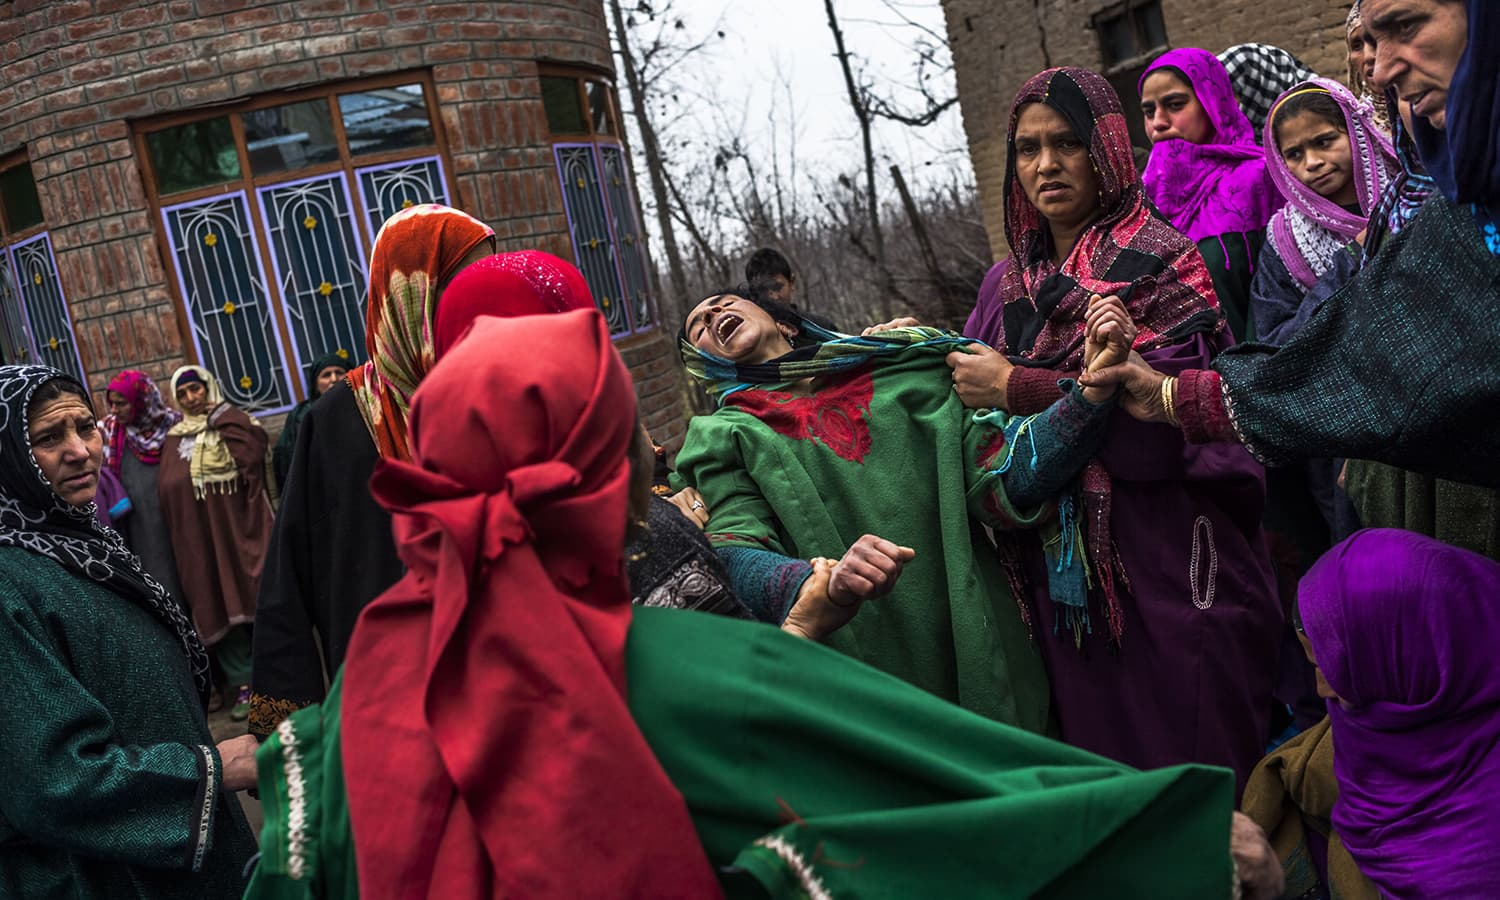 Hafeeza Khan (C), weeps during the funeral of nephew Rasiq Ahmed Khan, aged around 22, and who was found shot to death, at their home. ─AFP